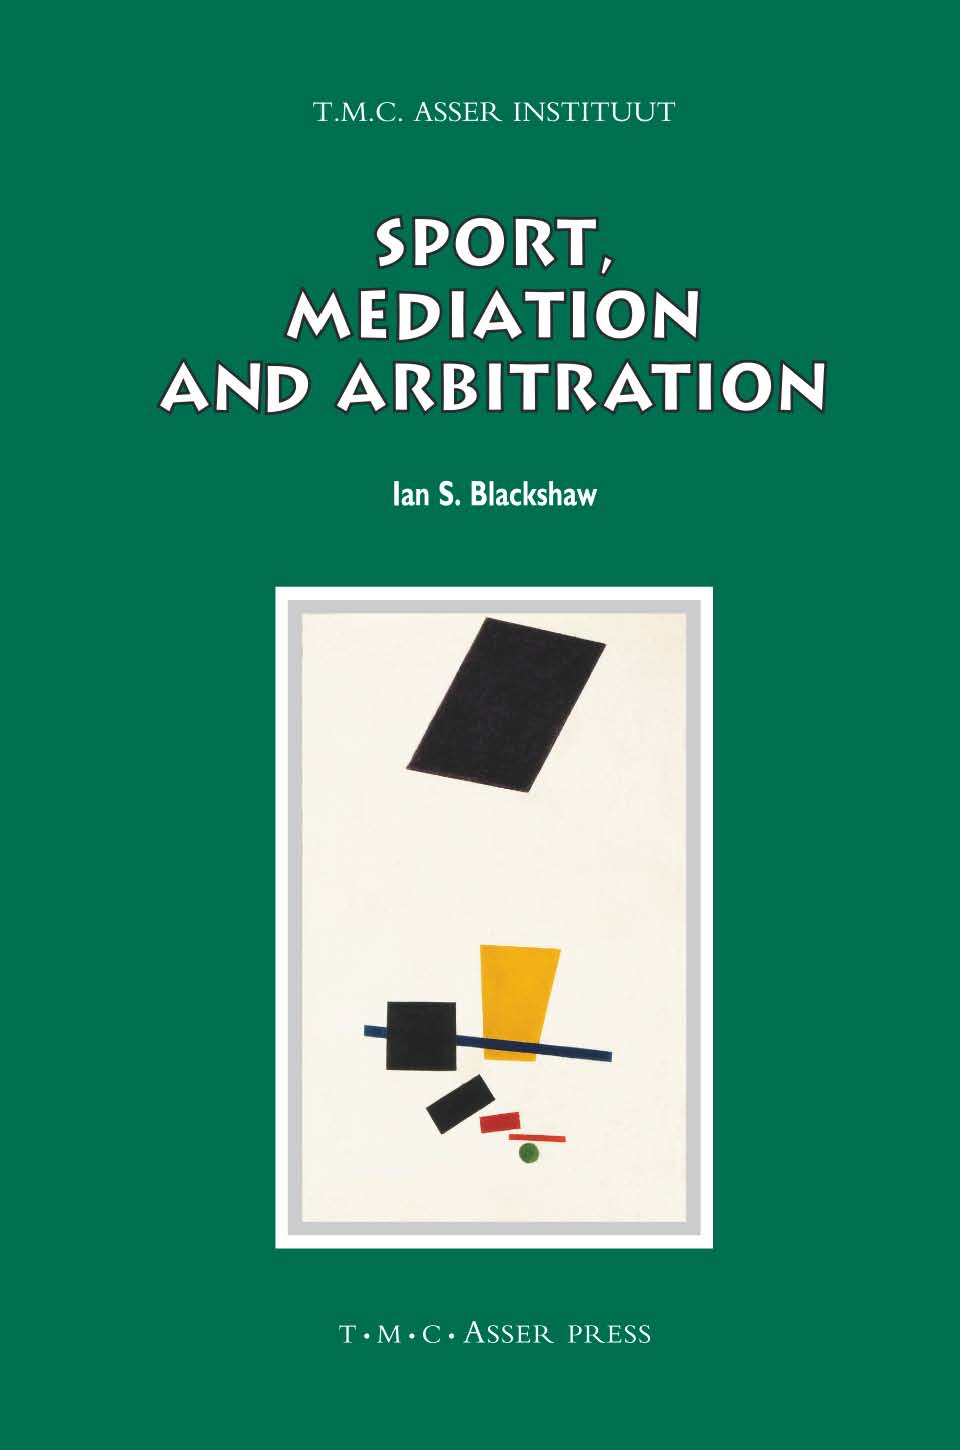 Sport, Mediation and Arbitration